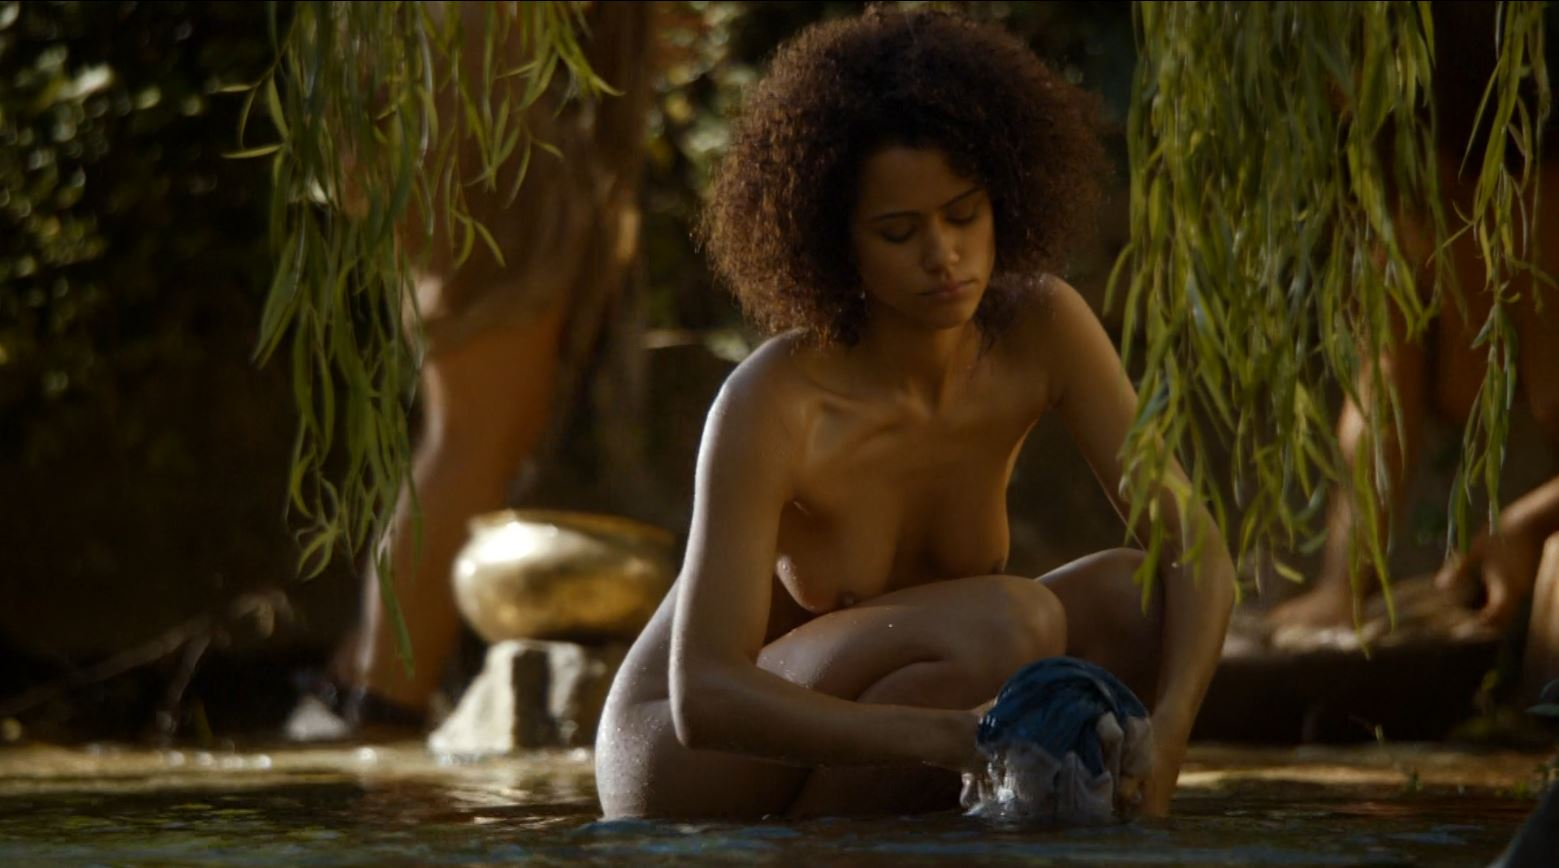 Game of Thrones 'The Mountain and The Viper' Review http://scifiempire.net Game Of Thrones - Nathalie Emmanuel nude as Missandei